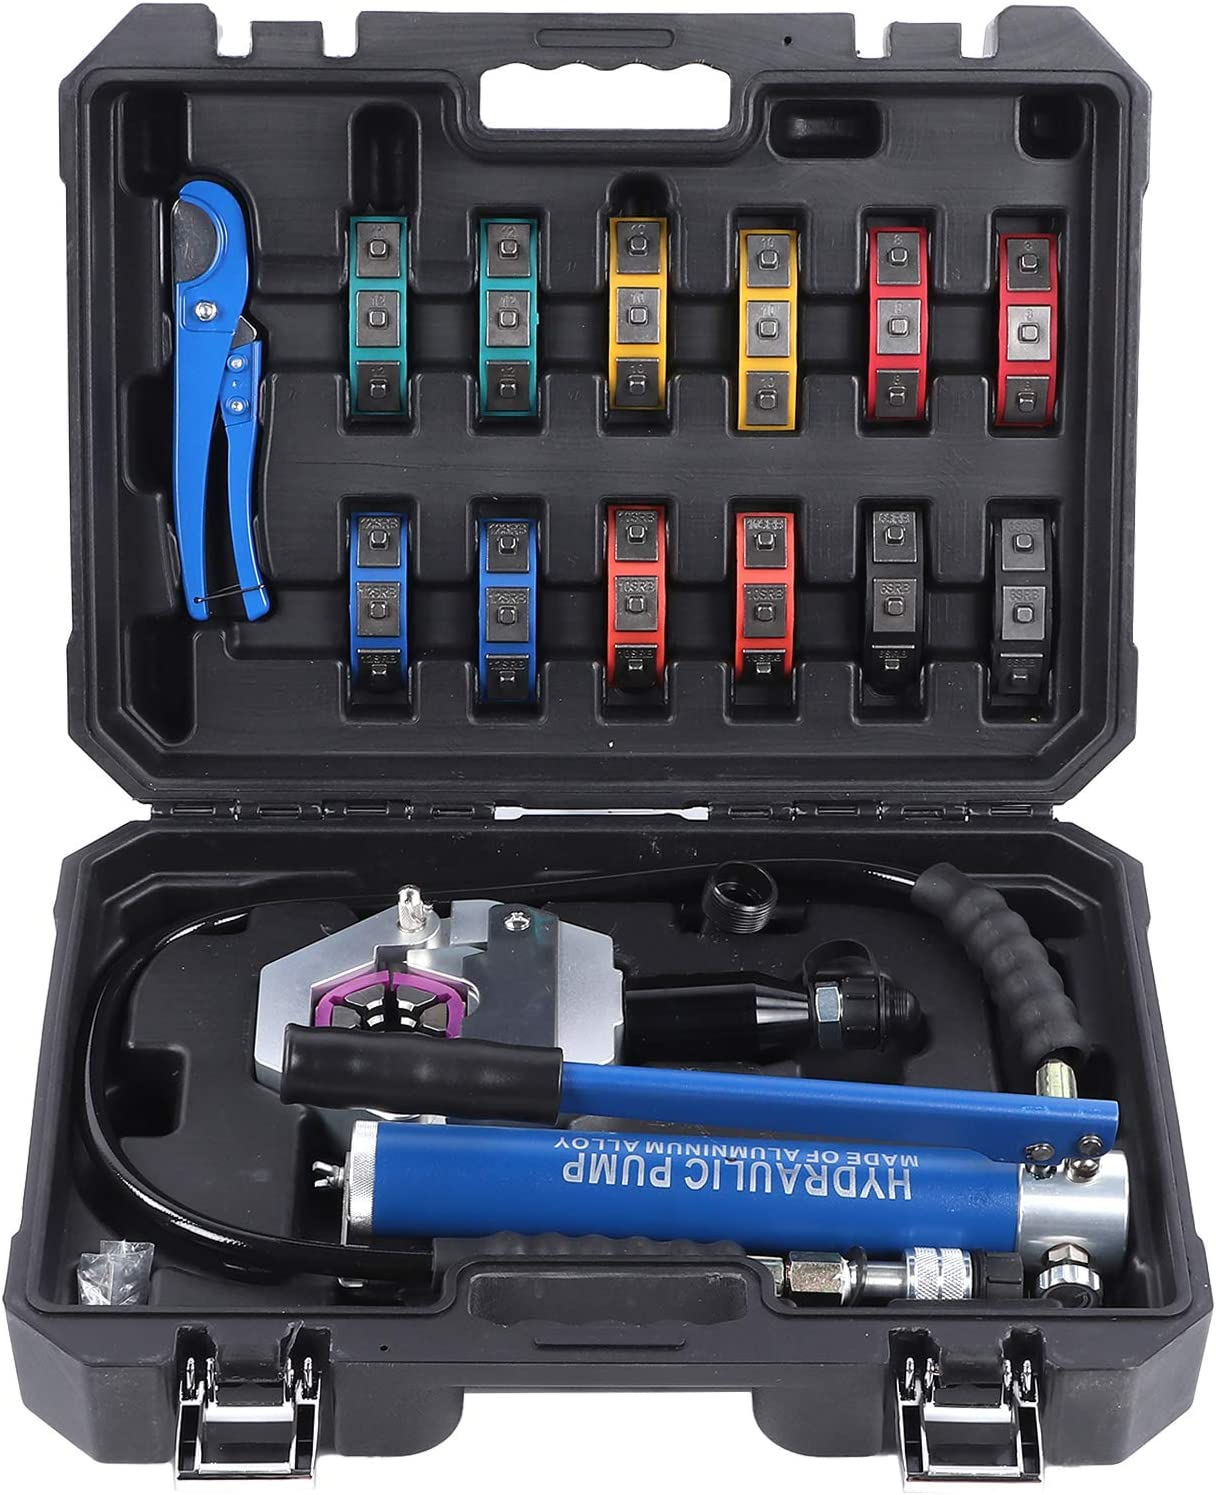 Cloudbox Car Air Conditioning Auto Manual Max 85% OFF A Crimper Kit Hose M Free Shipping New C